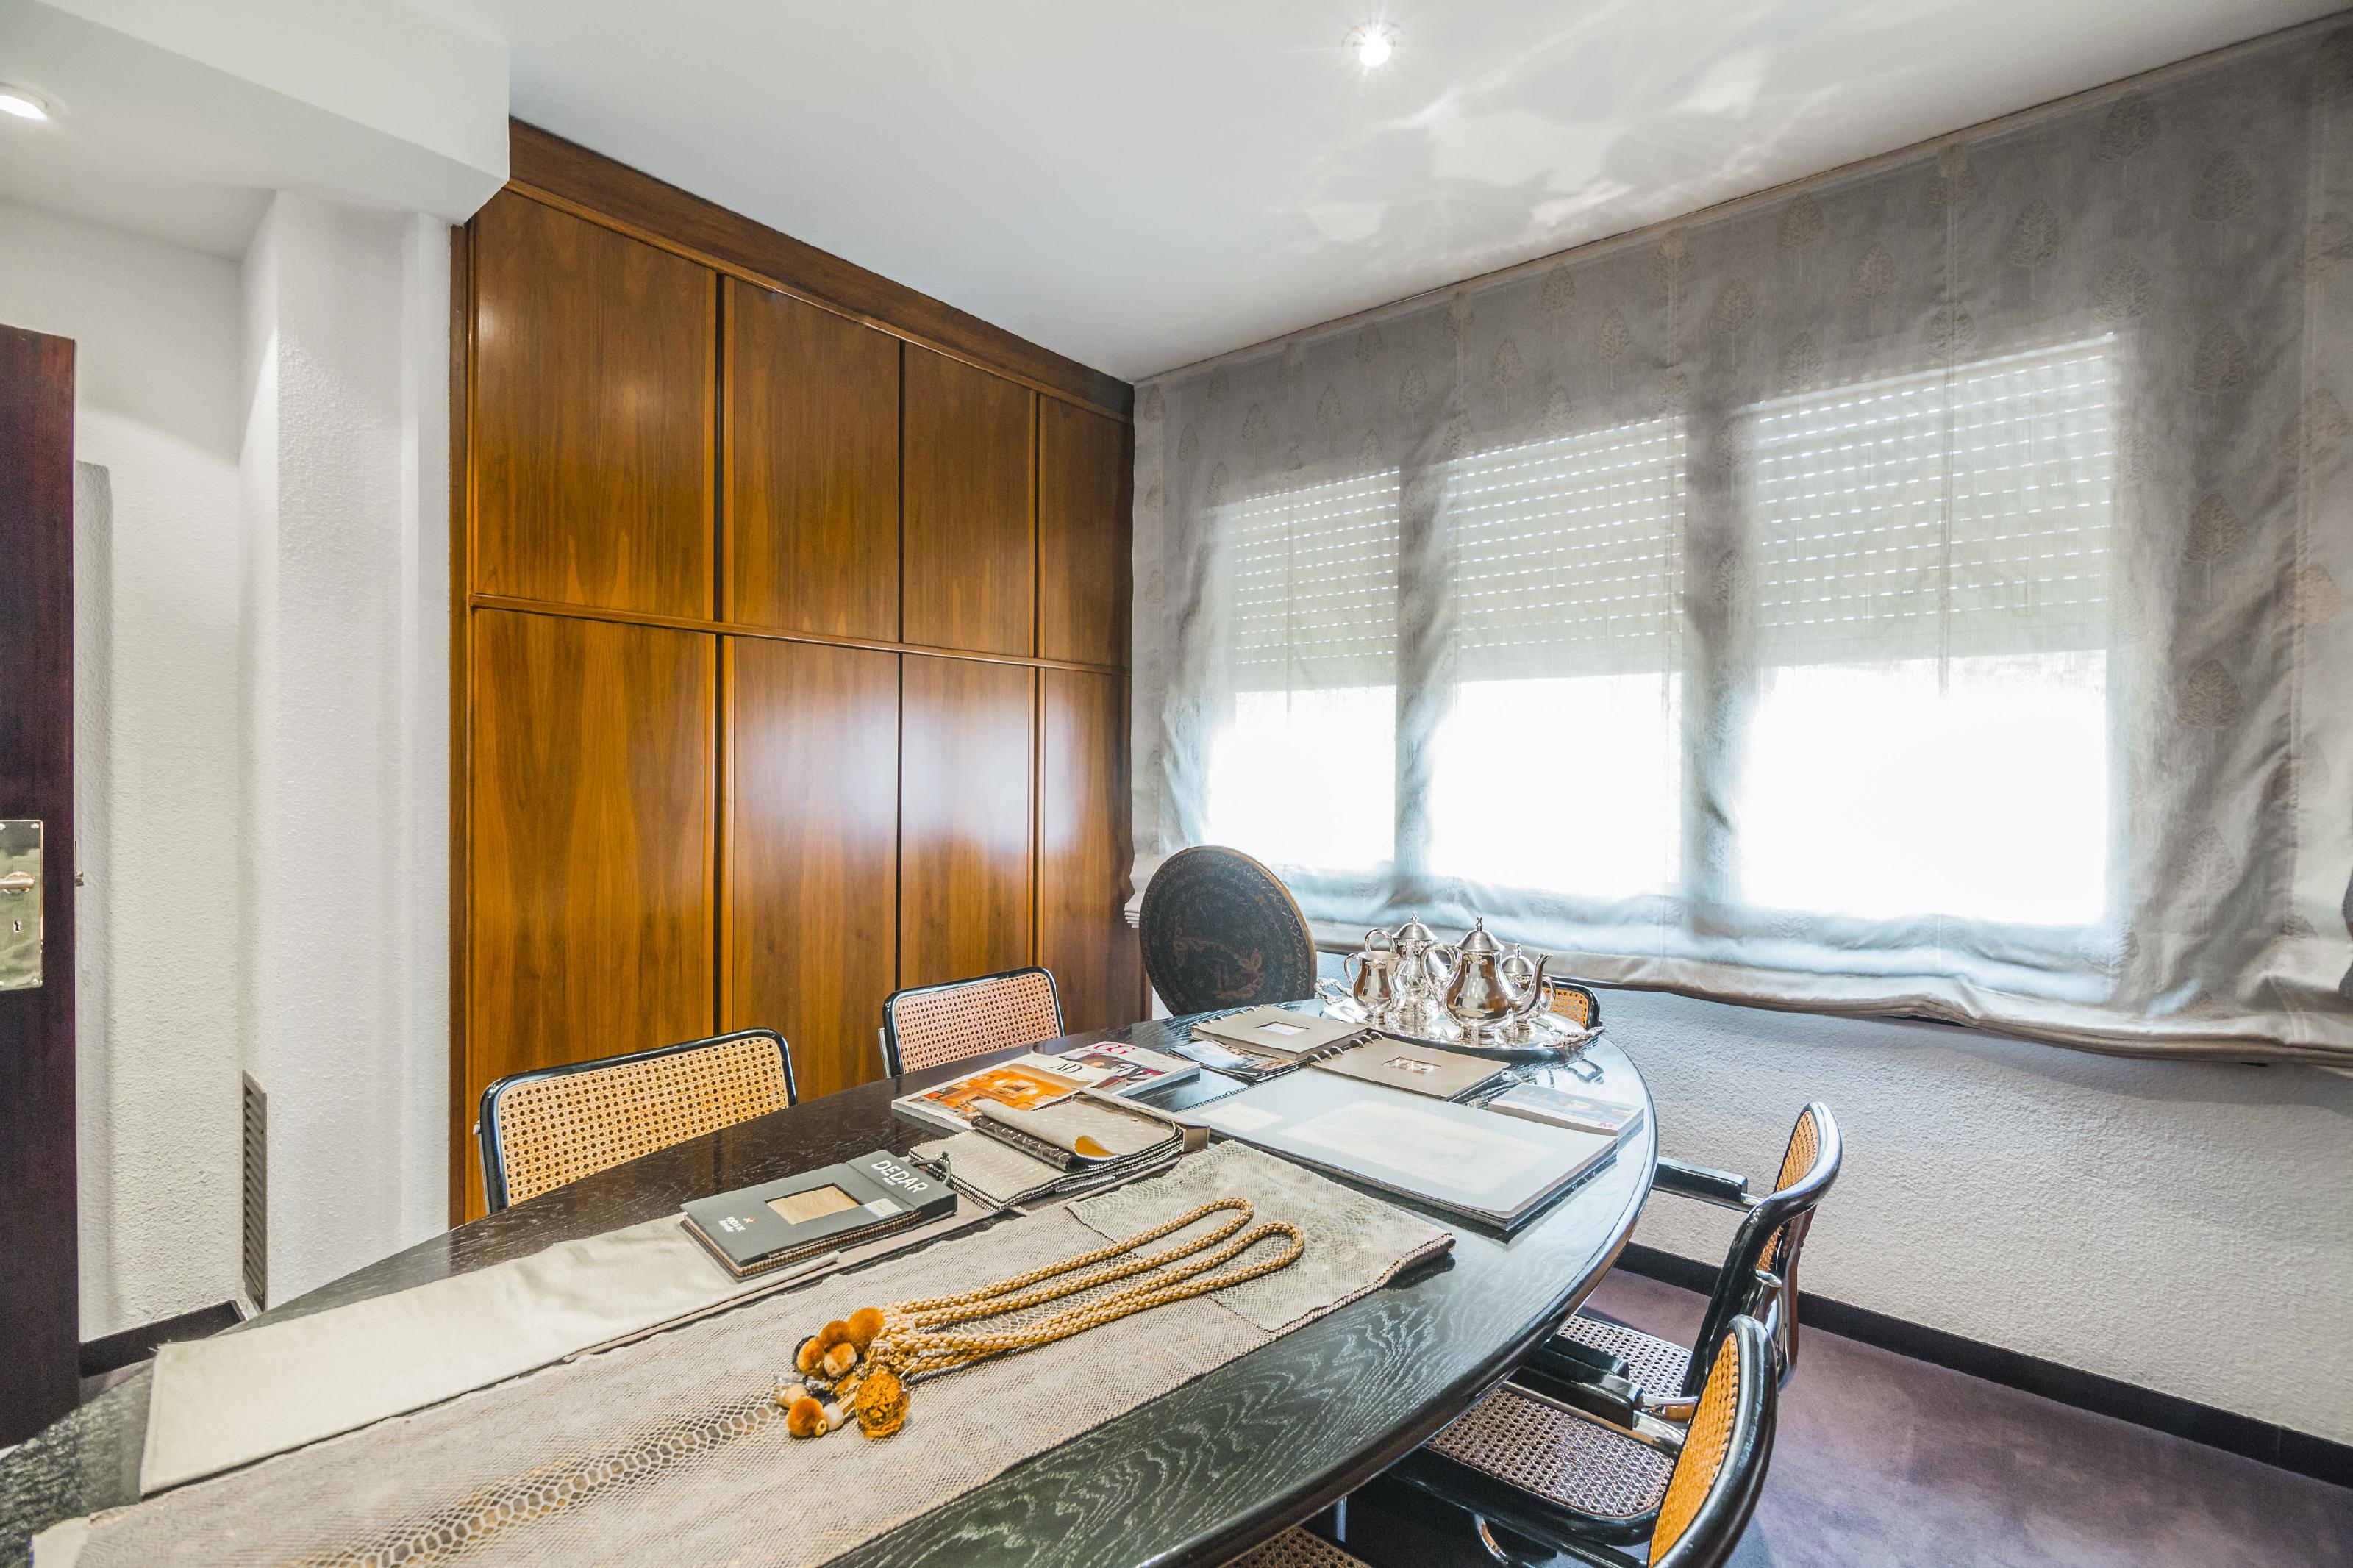 223855 Penthouse for sale in Sarrià-Sant Gervasi, Sant Gervasi-Galvany 22